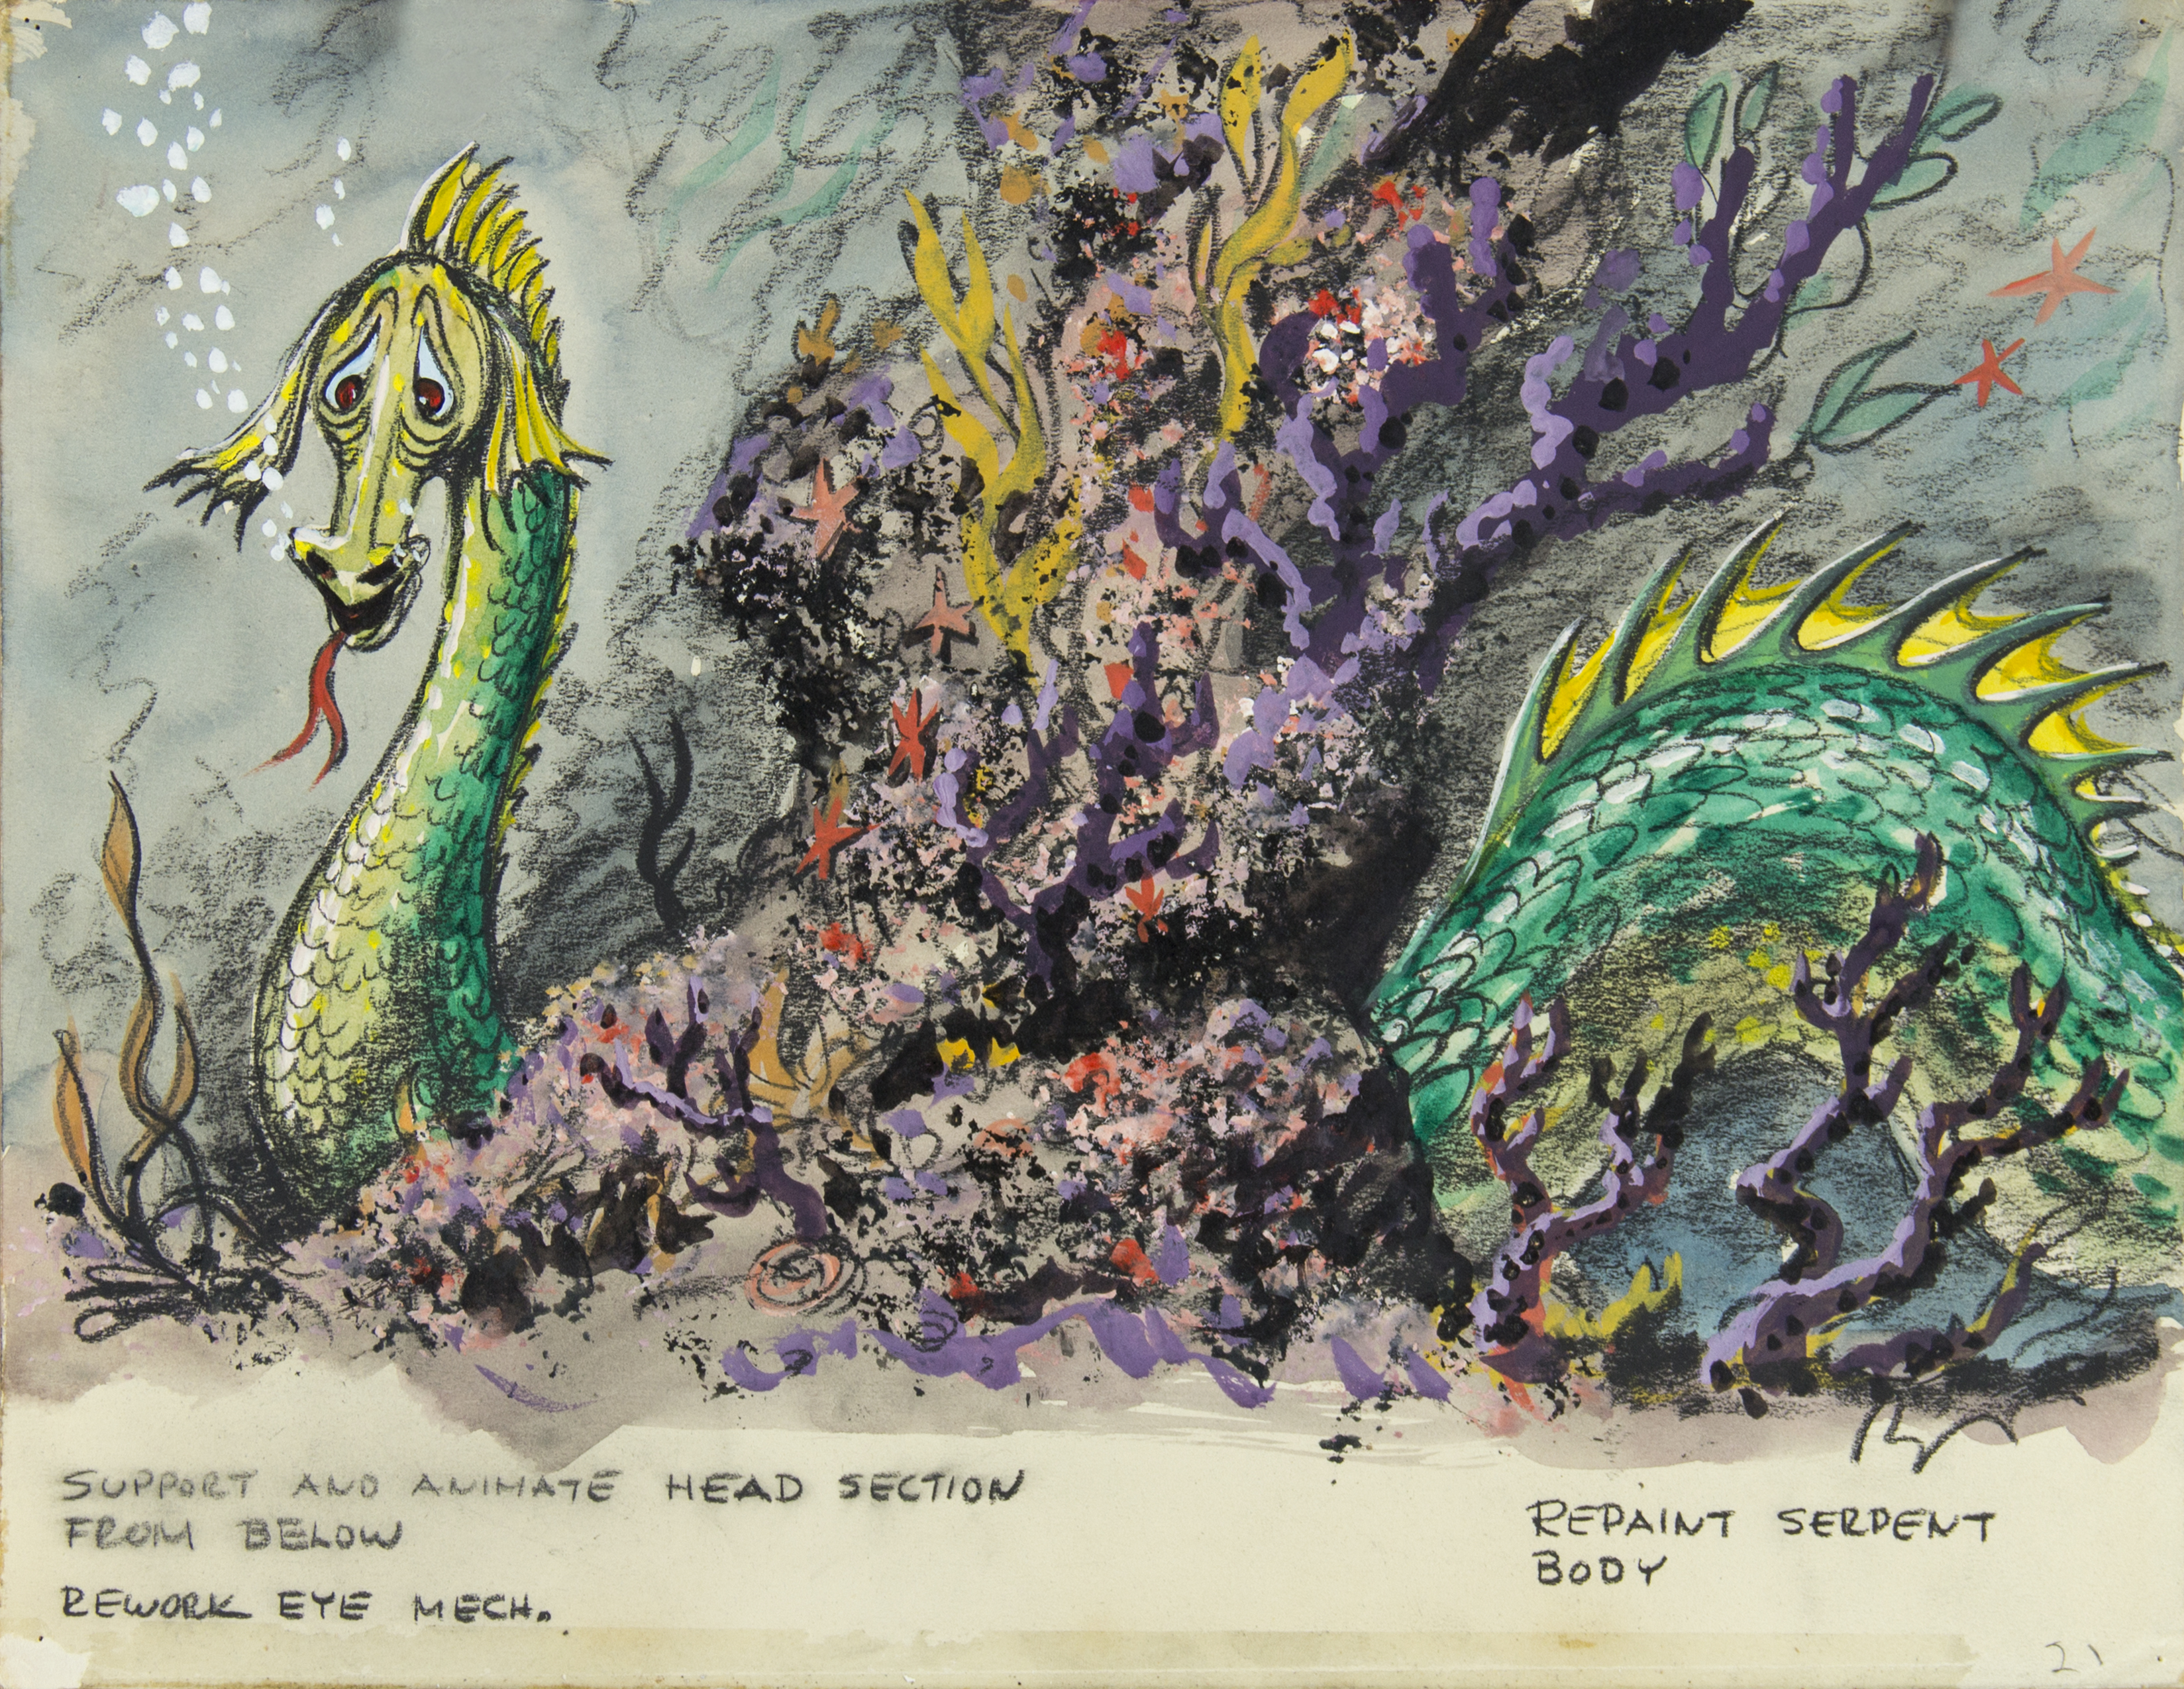 Submarine Voyage Sea Serpent concept painting, gouache on board, c. 1958.